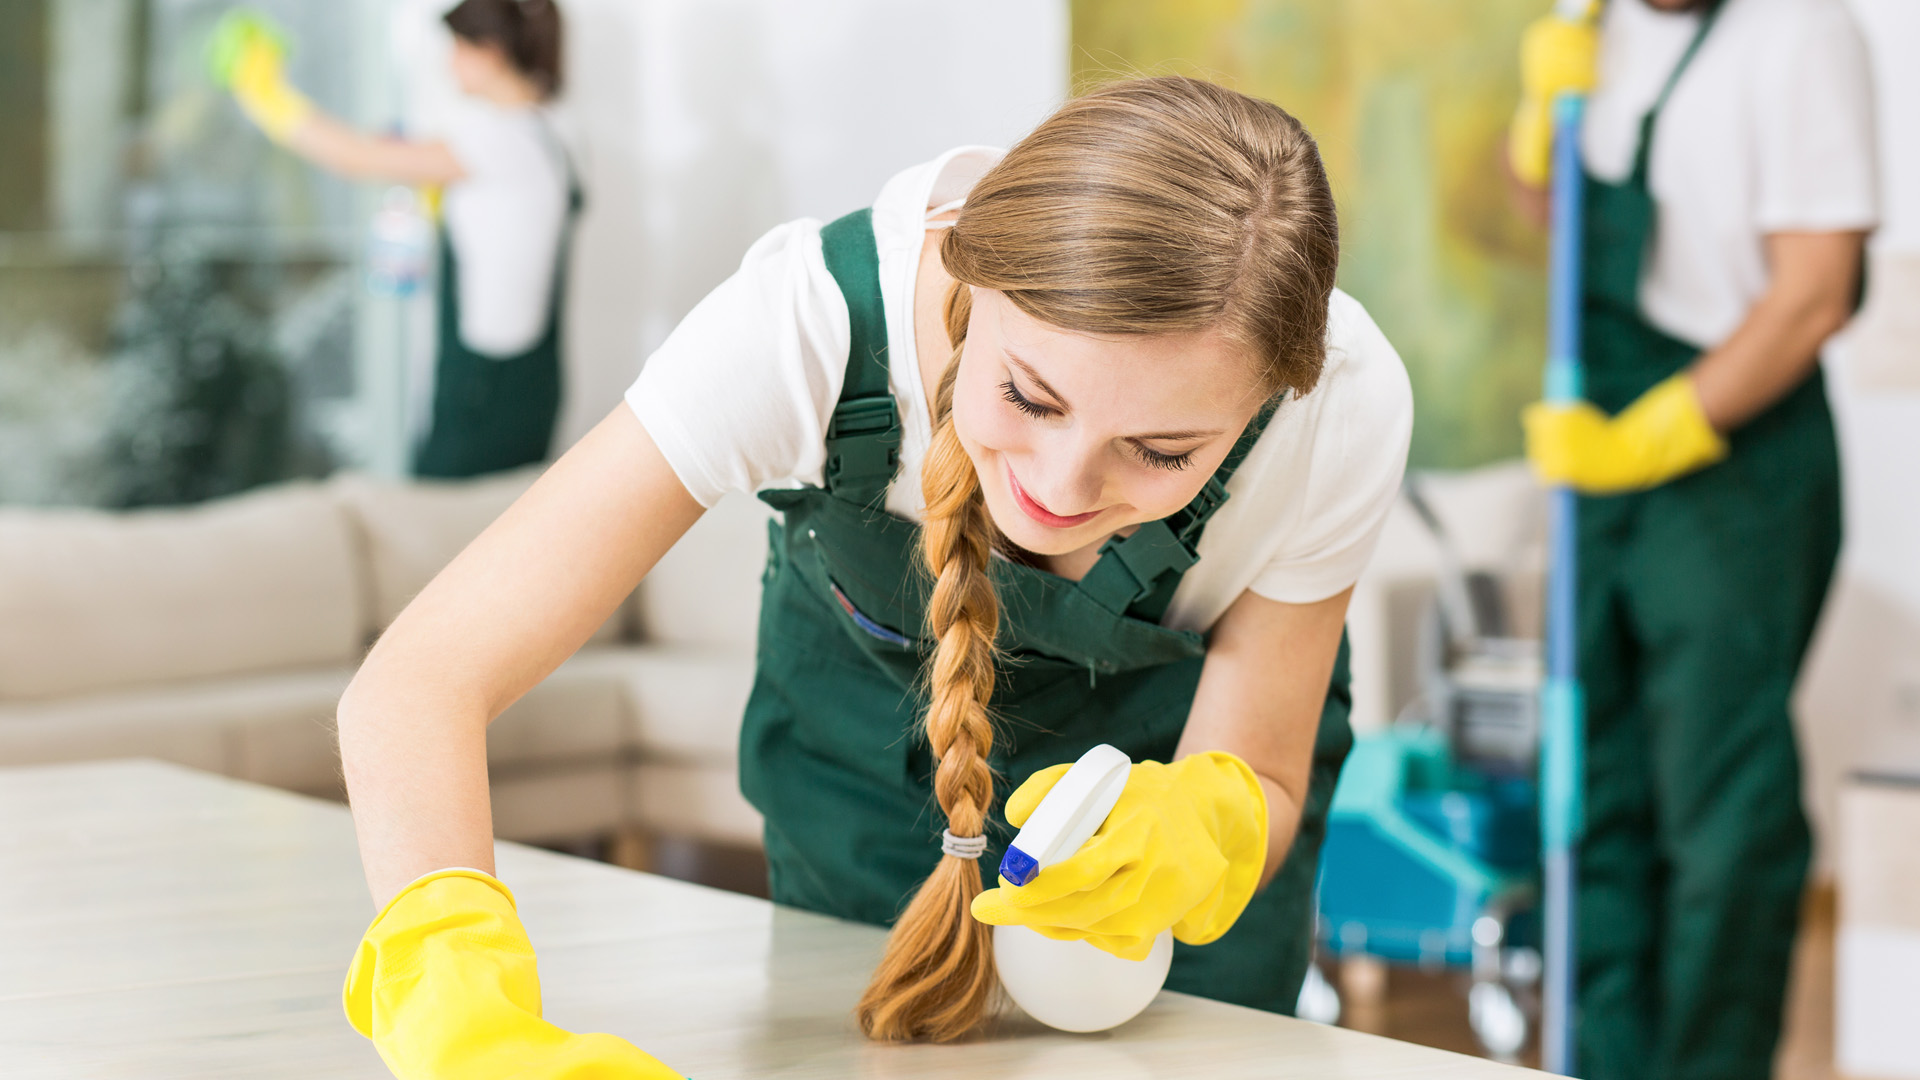 Why school should hire professional cleaning service?